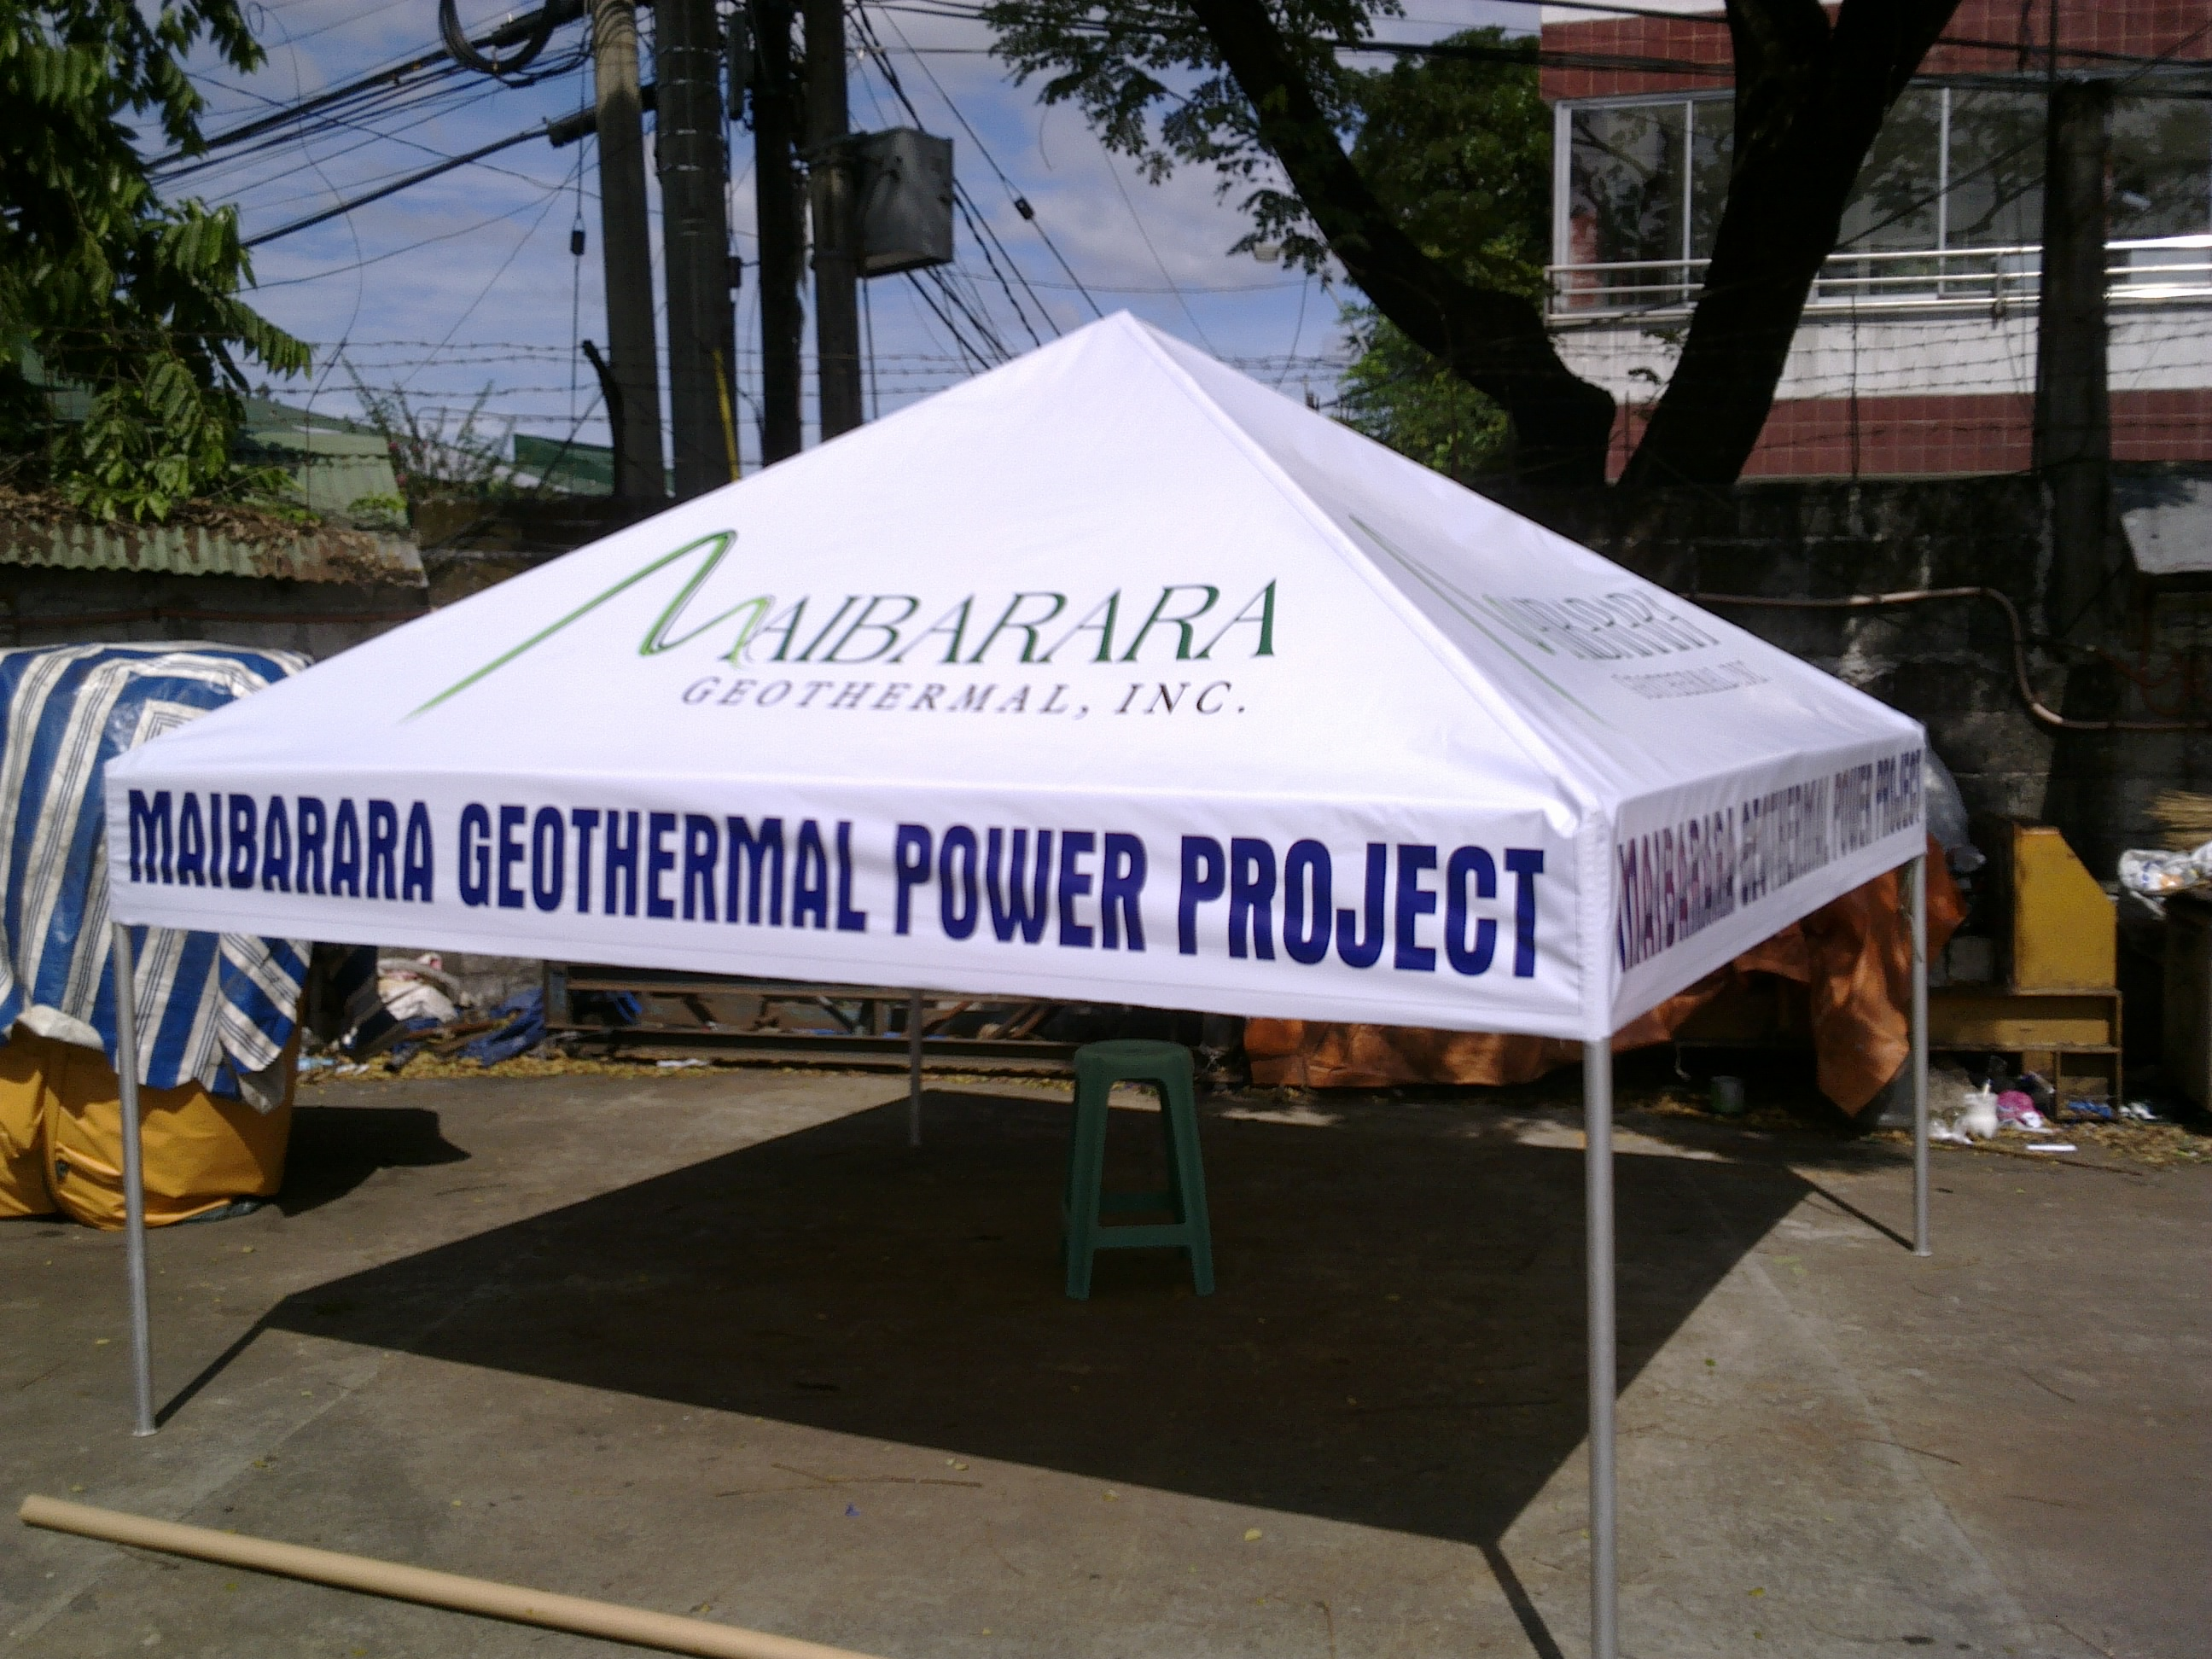 Tents Fabrimetrics Philippines Inc